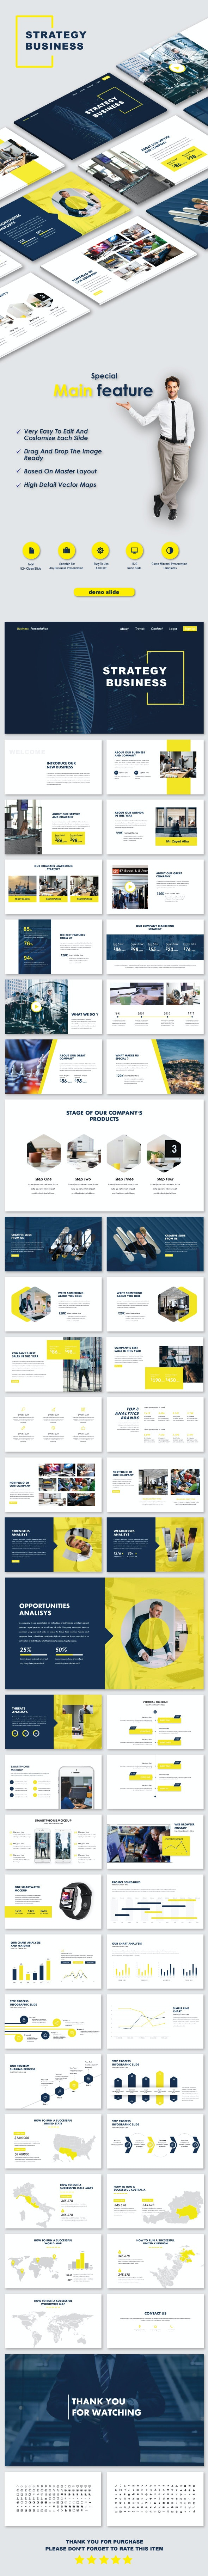 Strategy Business PowerPoint Templates - Business PowerPoint Templates